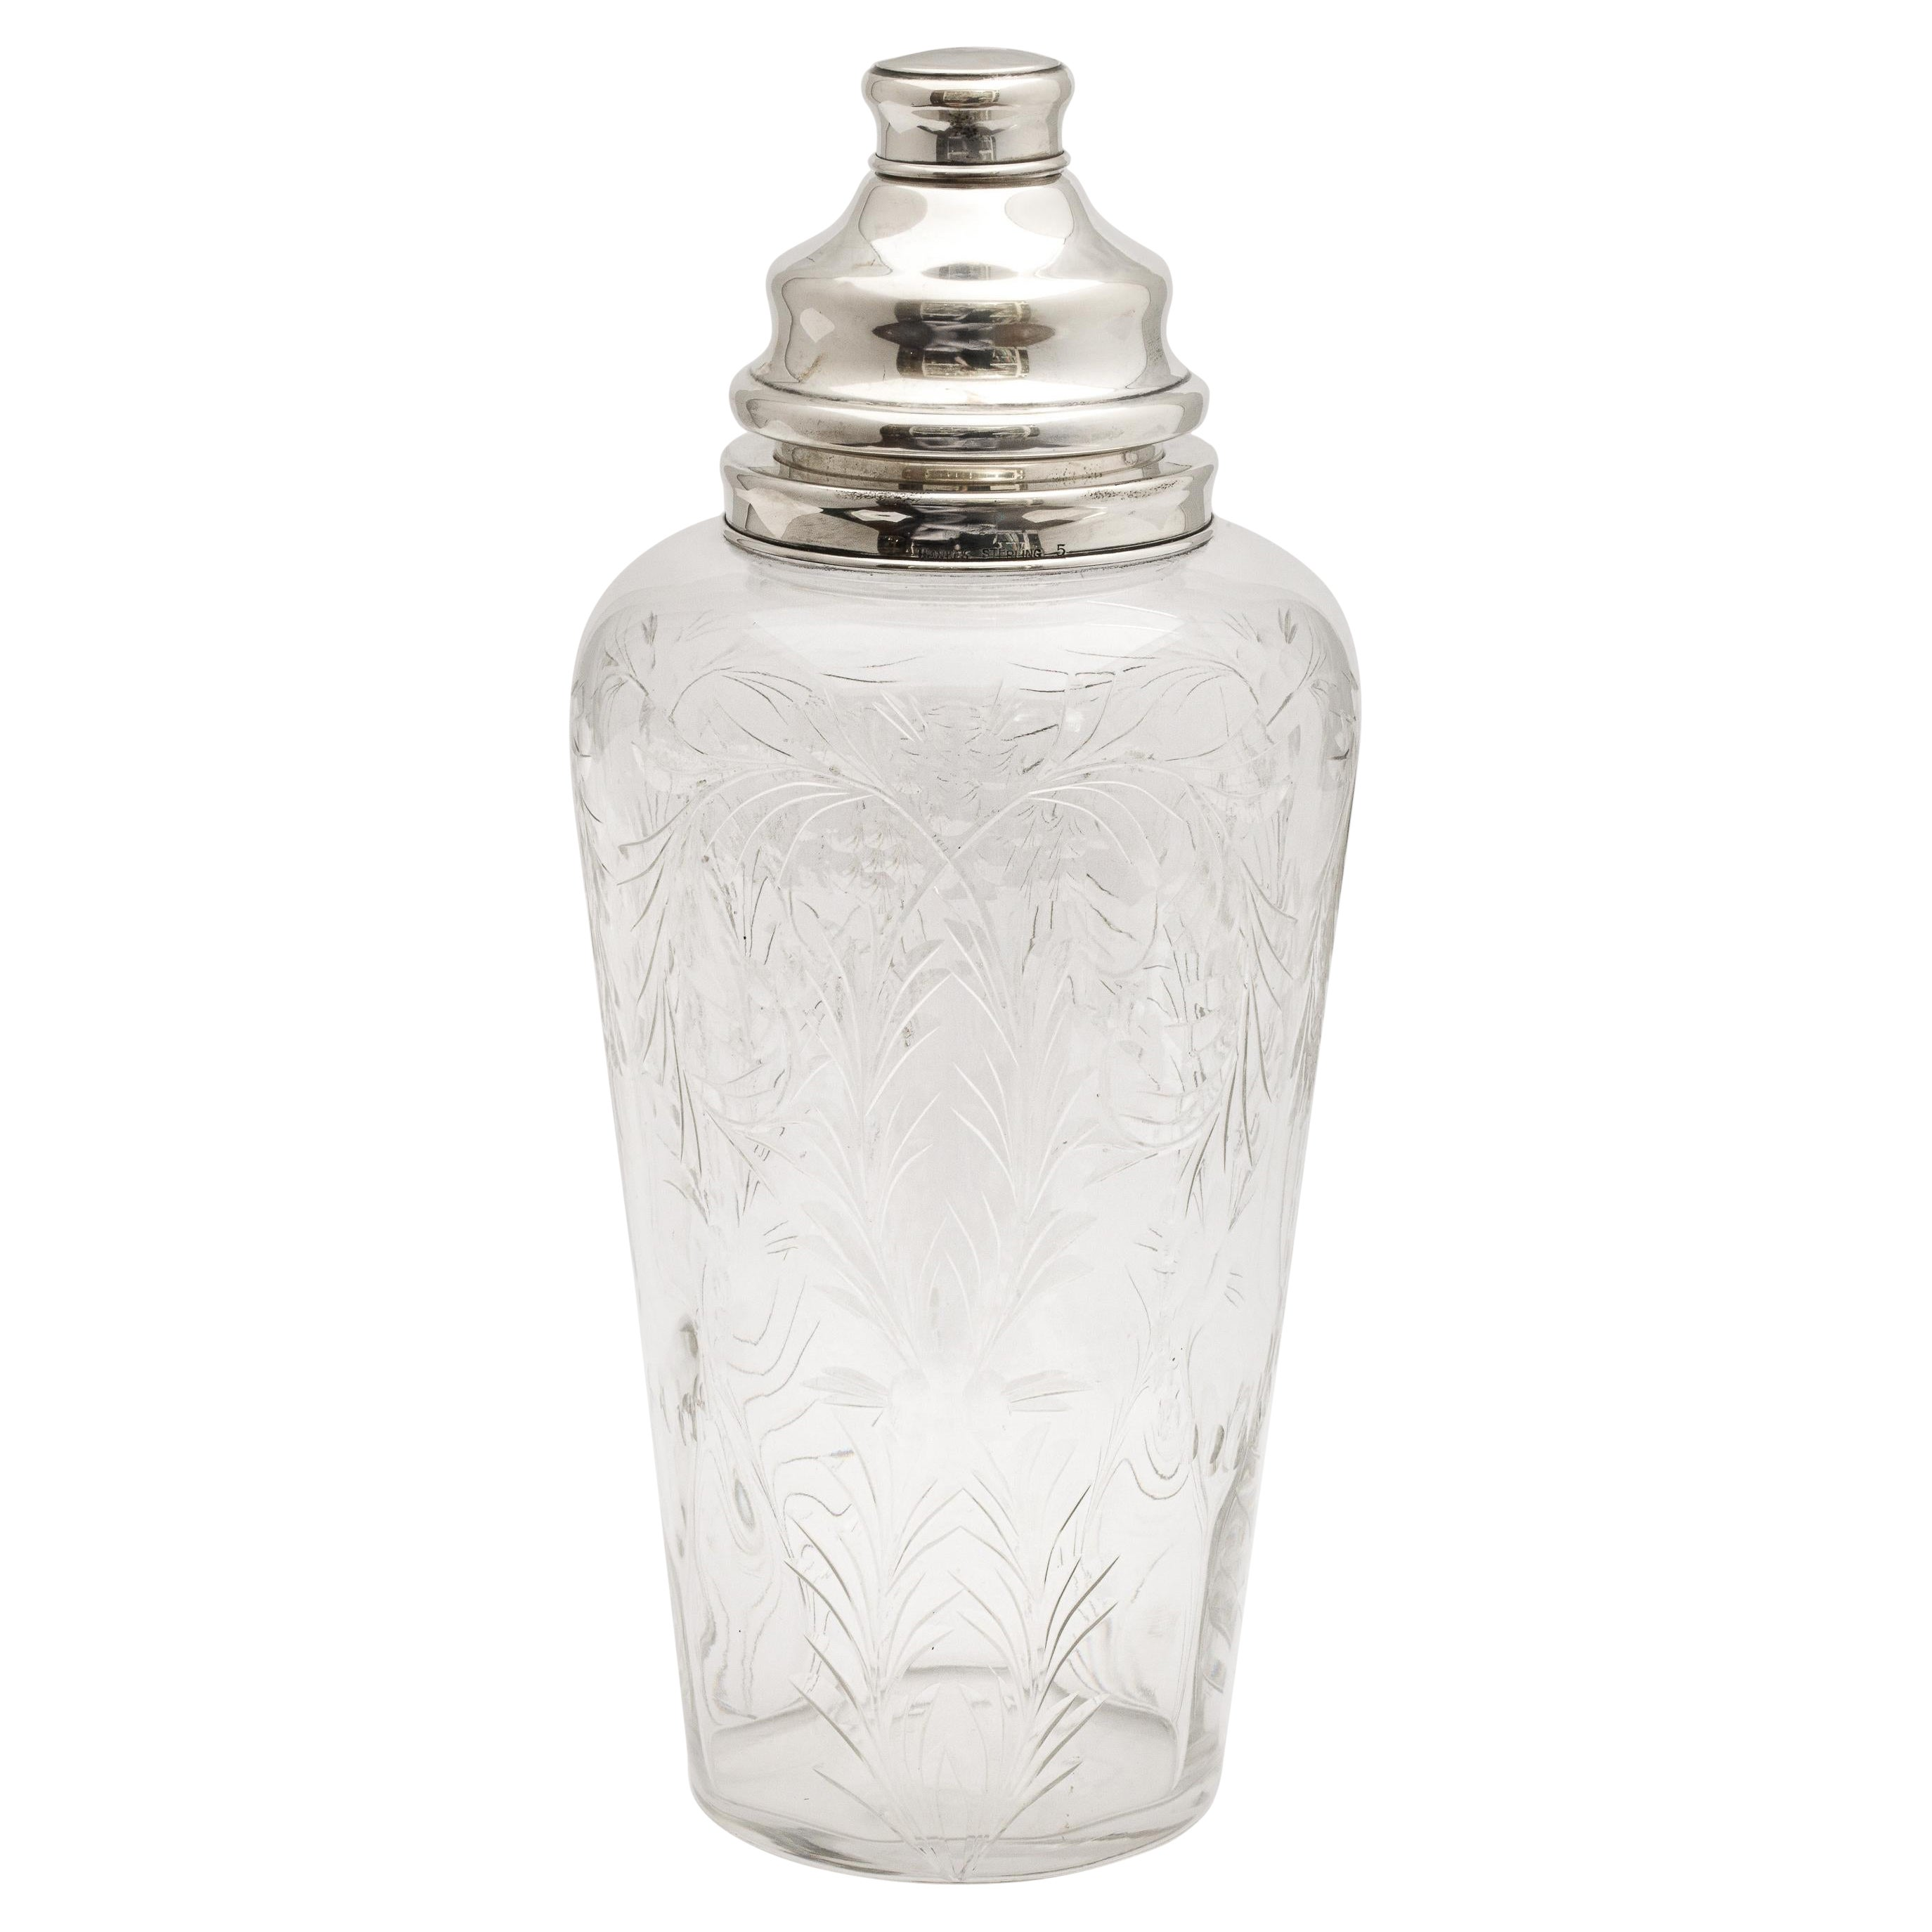 Art Deco Sterling Silver-Mounted Cocktail Shaker by Hawkes